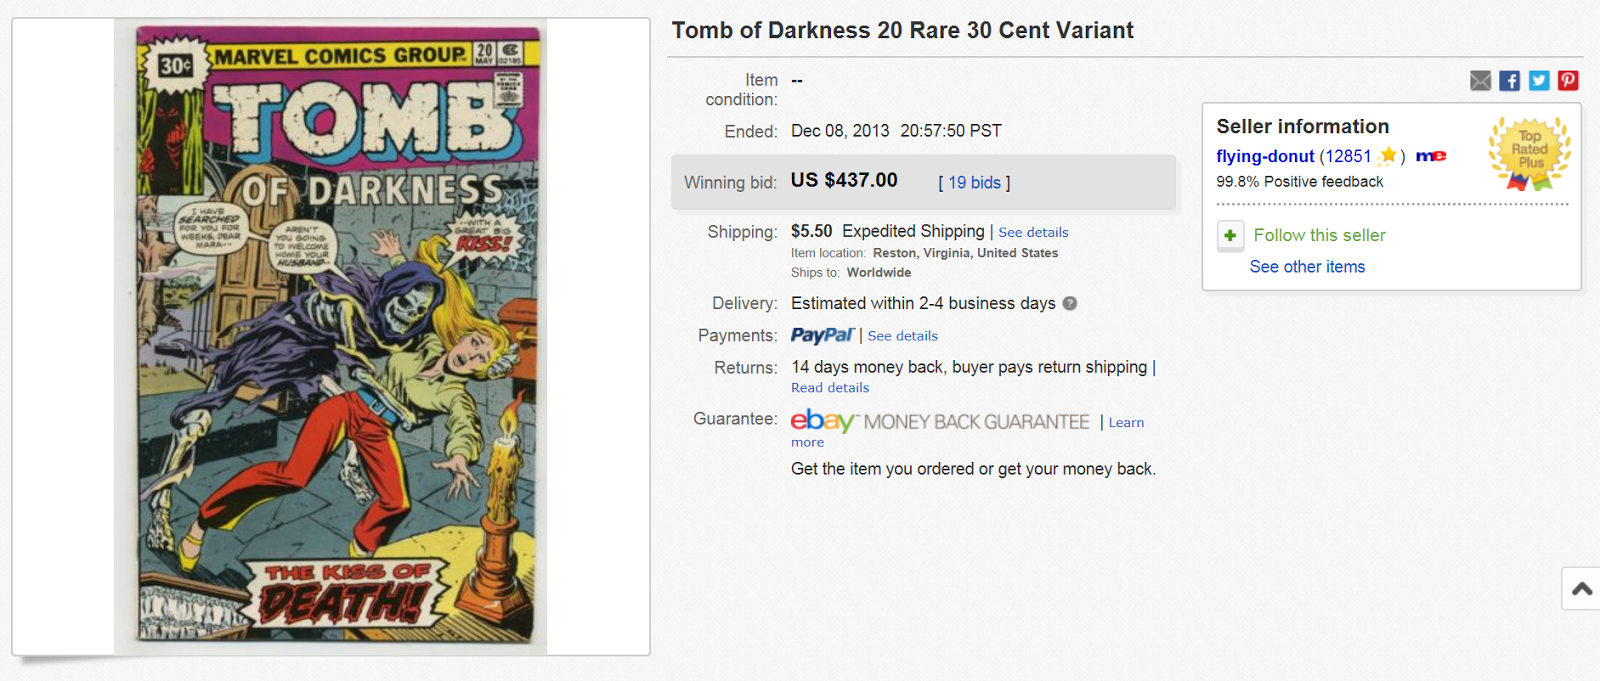 Bronze Age Marvel Variants Nice Tomb Of Darkness 20 Price Variant Brings Shocking Result Shatters High Price Record